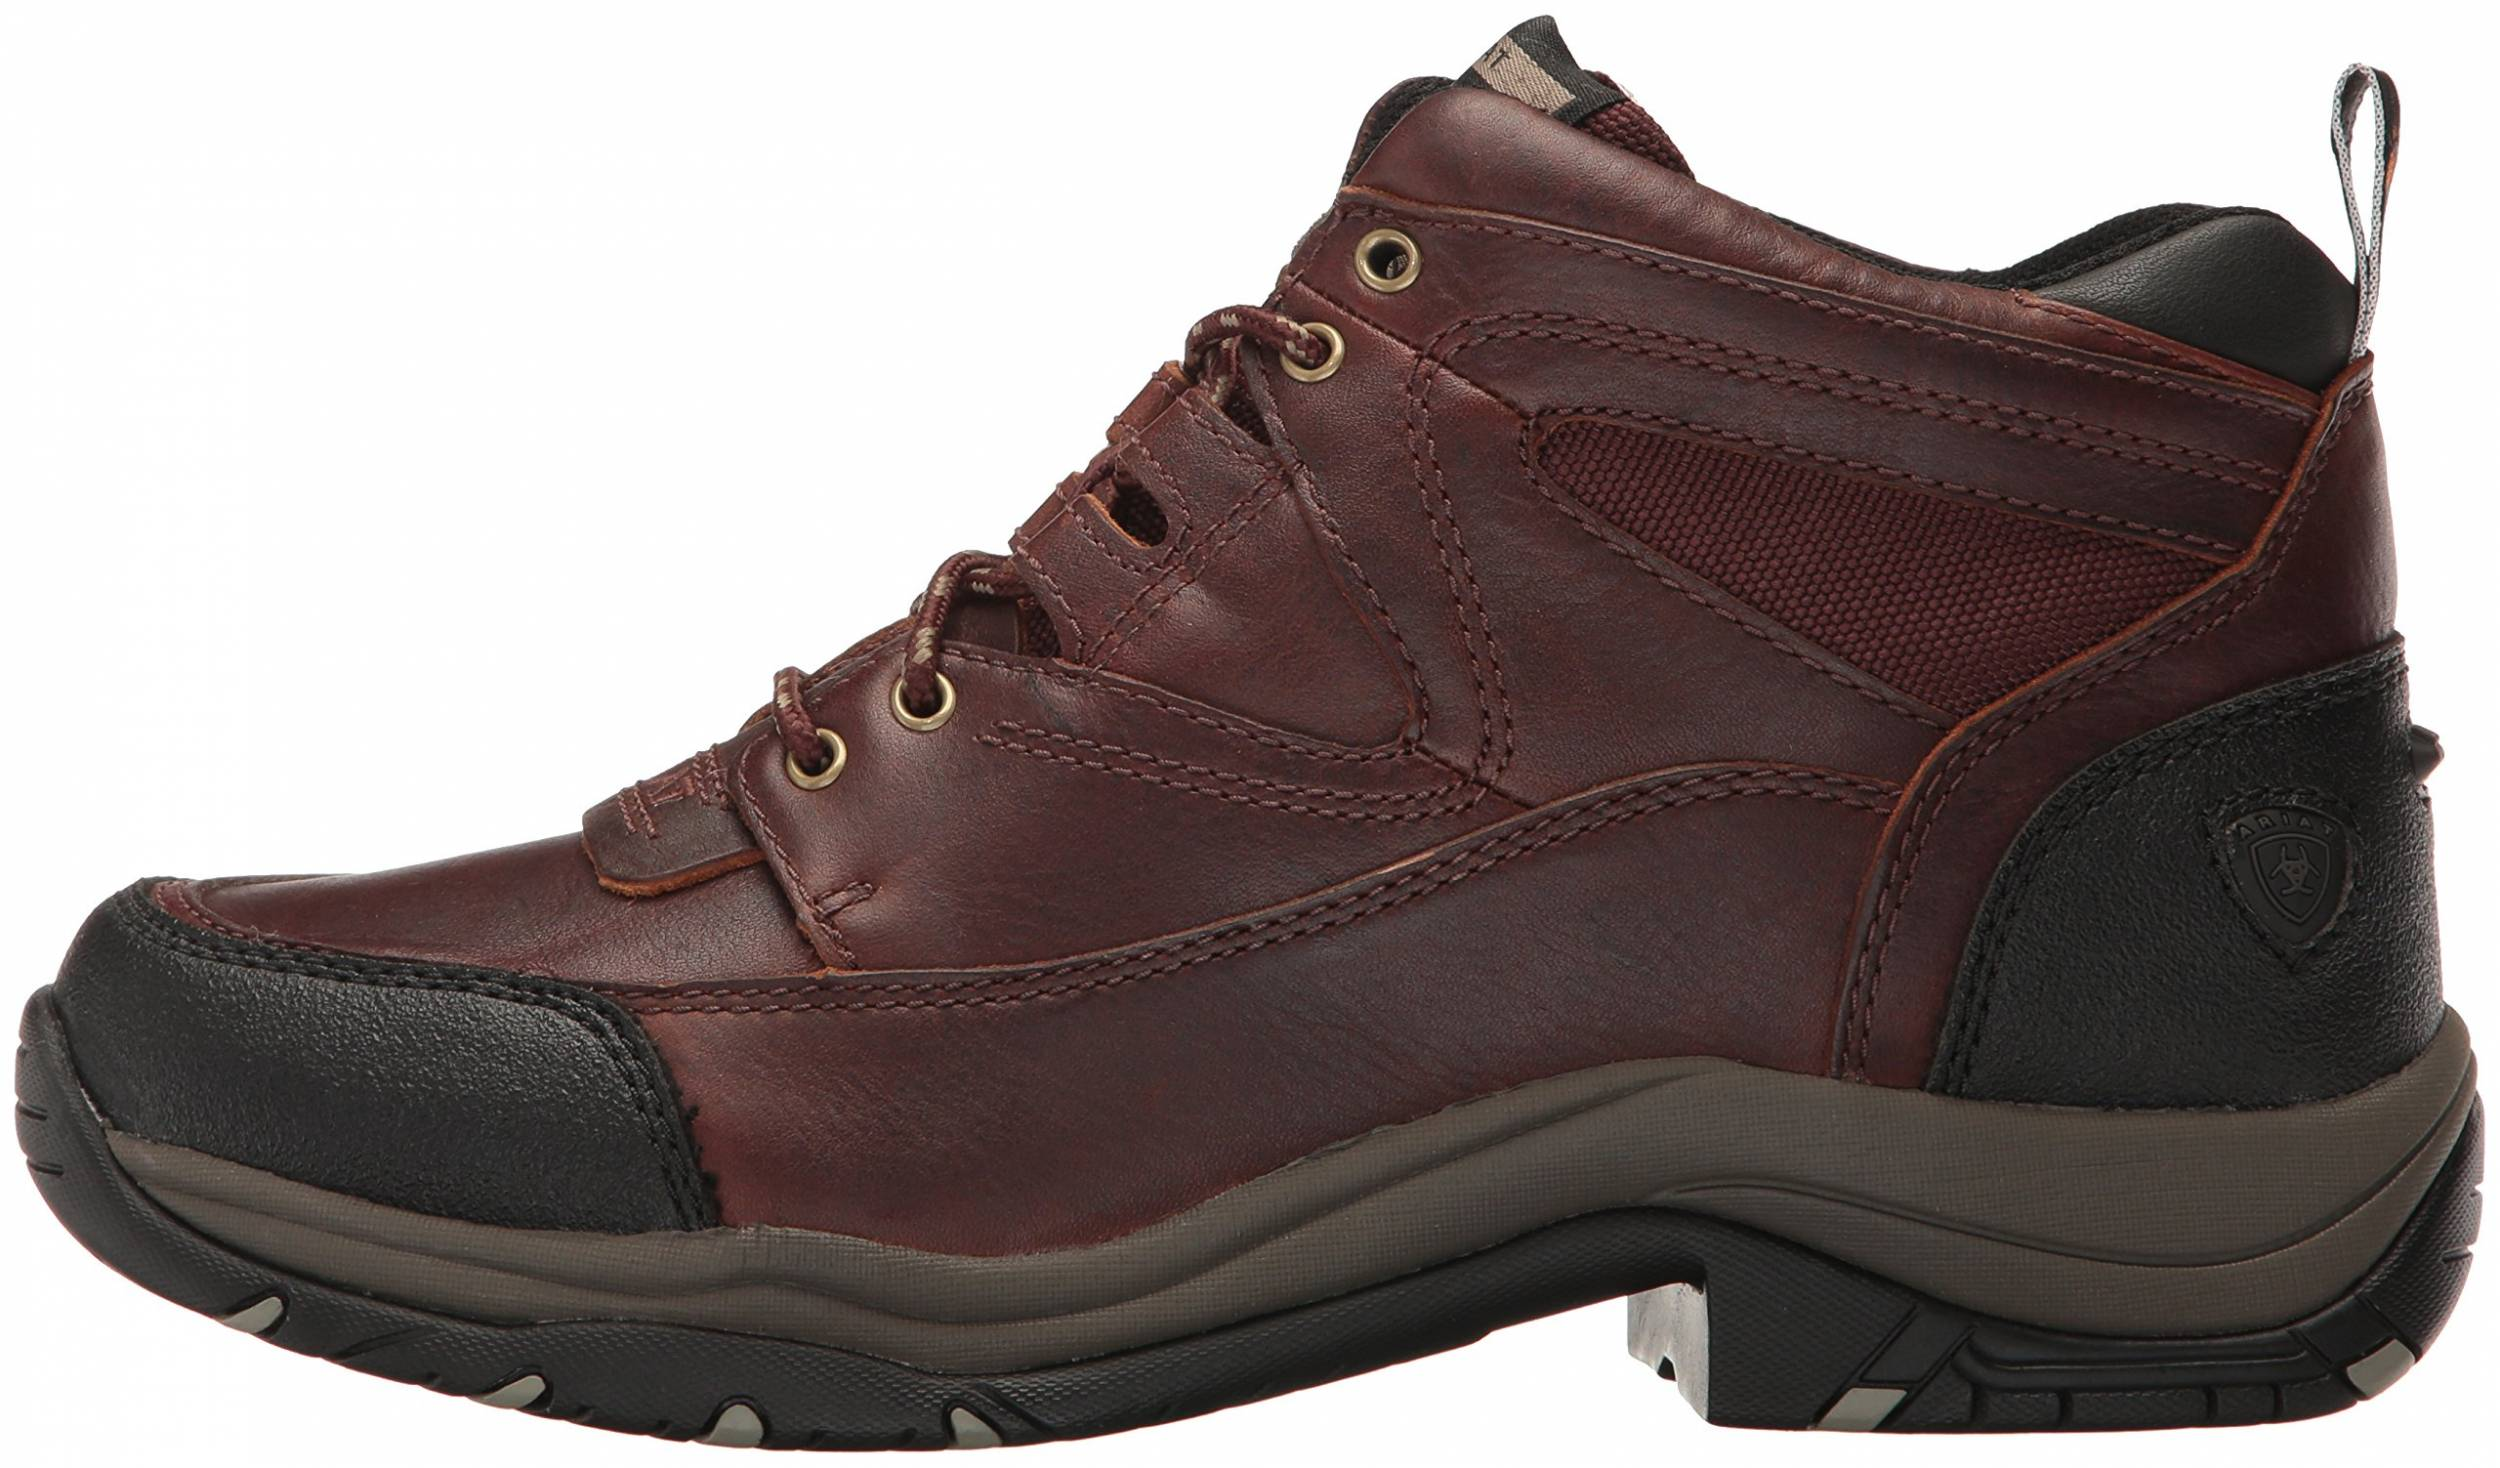 inexpensive hiking boots